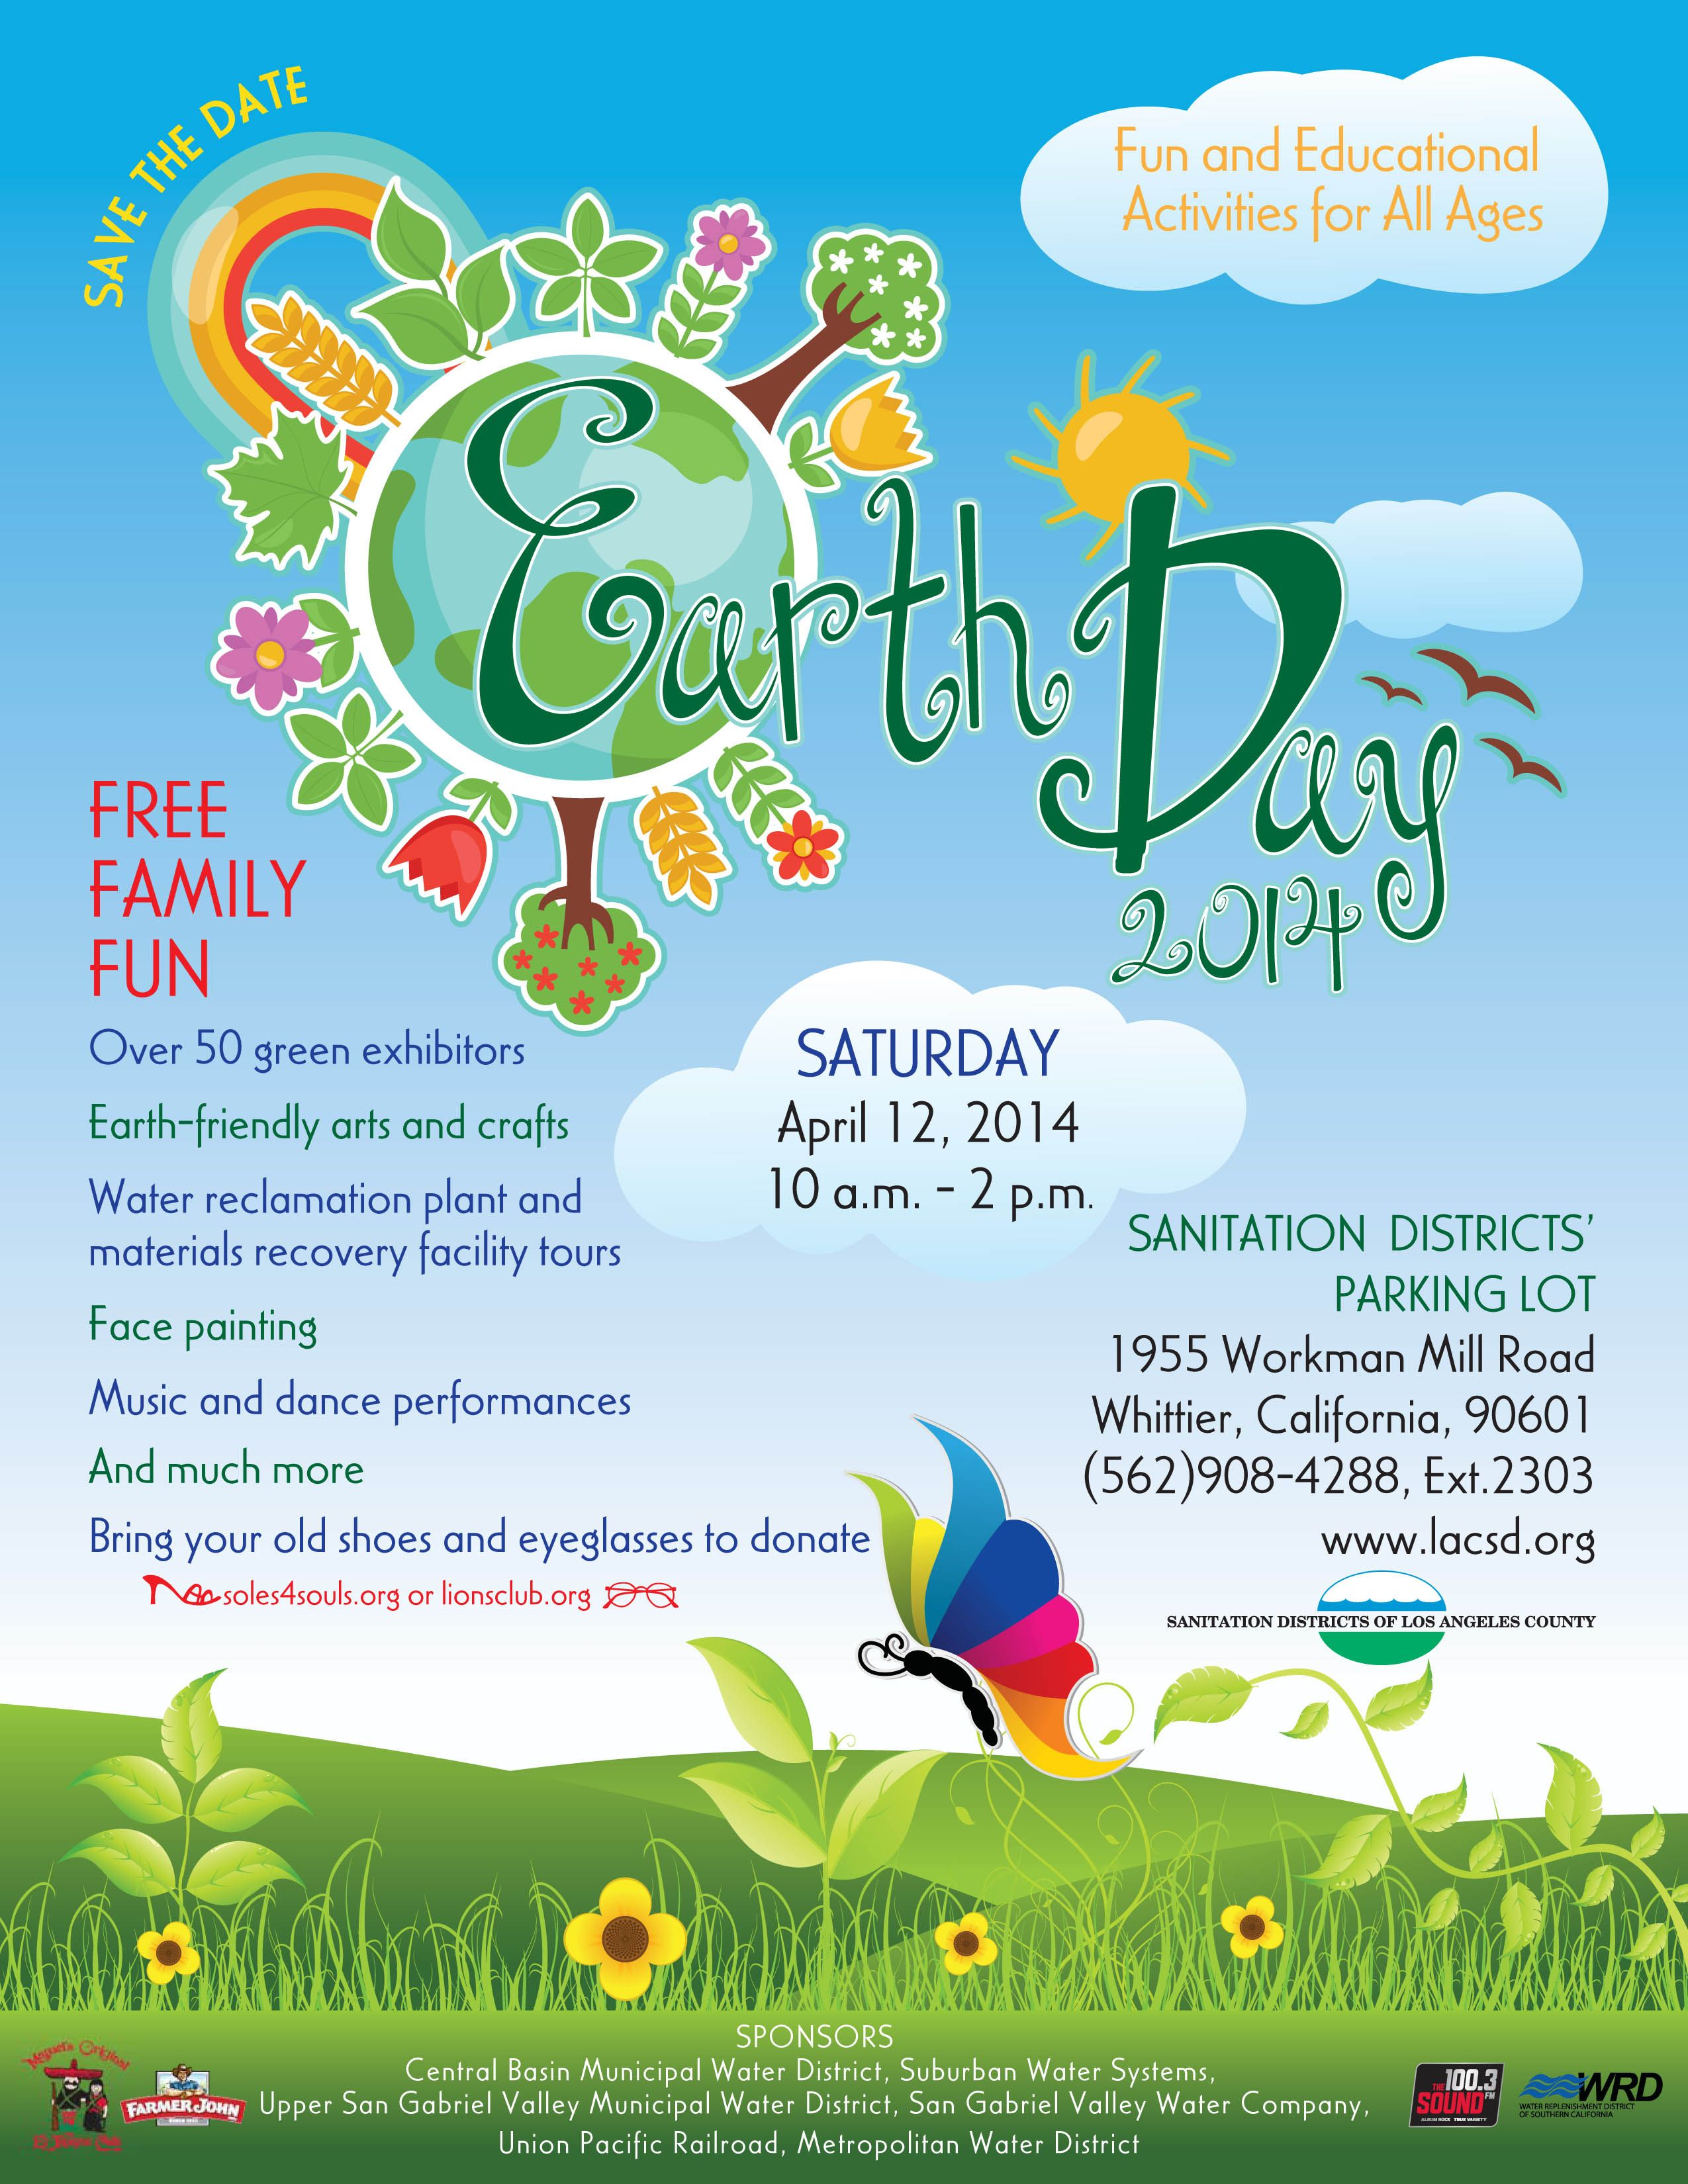 Celebrate Earth Day 2014 This Saturday April 12 From 10 Am 2 Pm With The Sanitation Districts Of La County Earth Day 2013 Earth Week Educational Activities